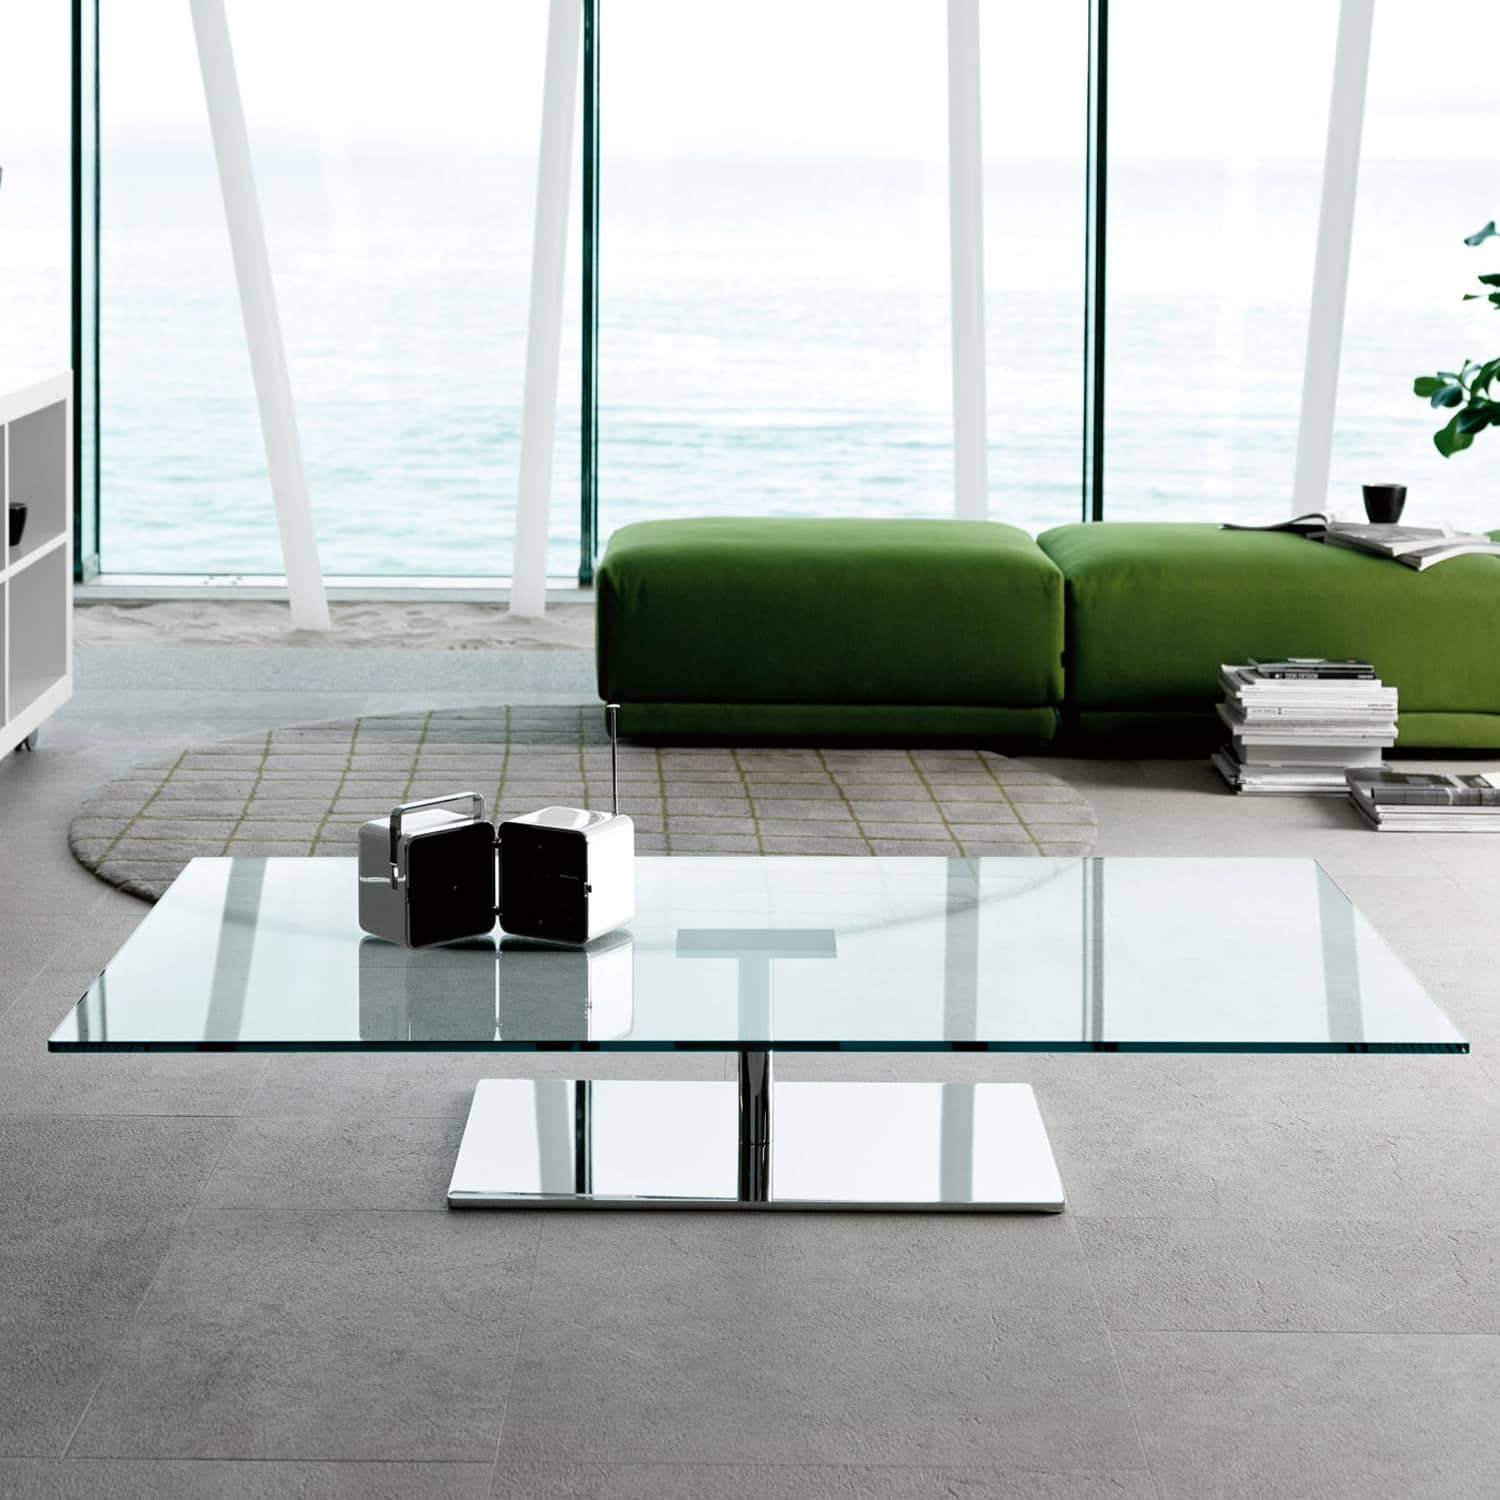 Glass Coffee Tables Furniture Village: Farniente Rectangular Glass And Metal Coffee Table By